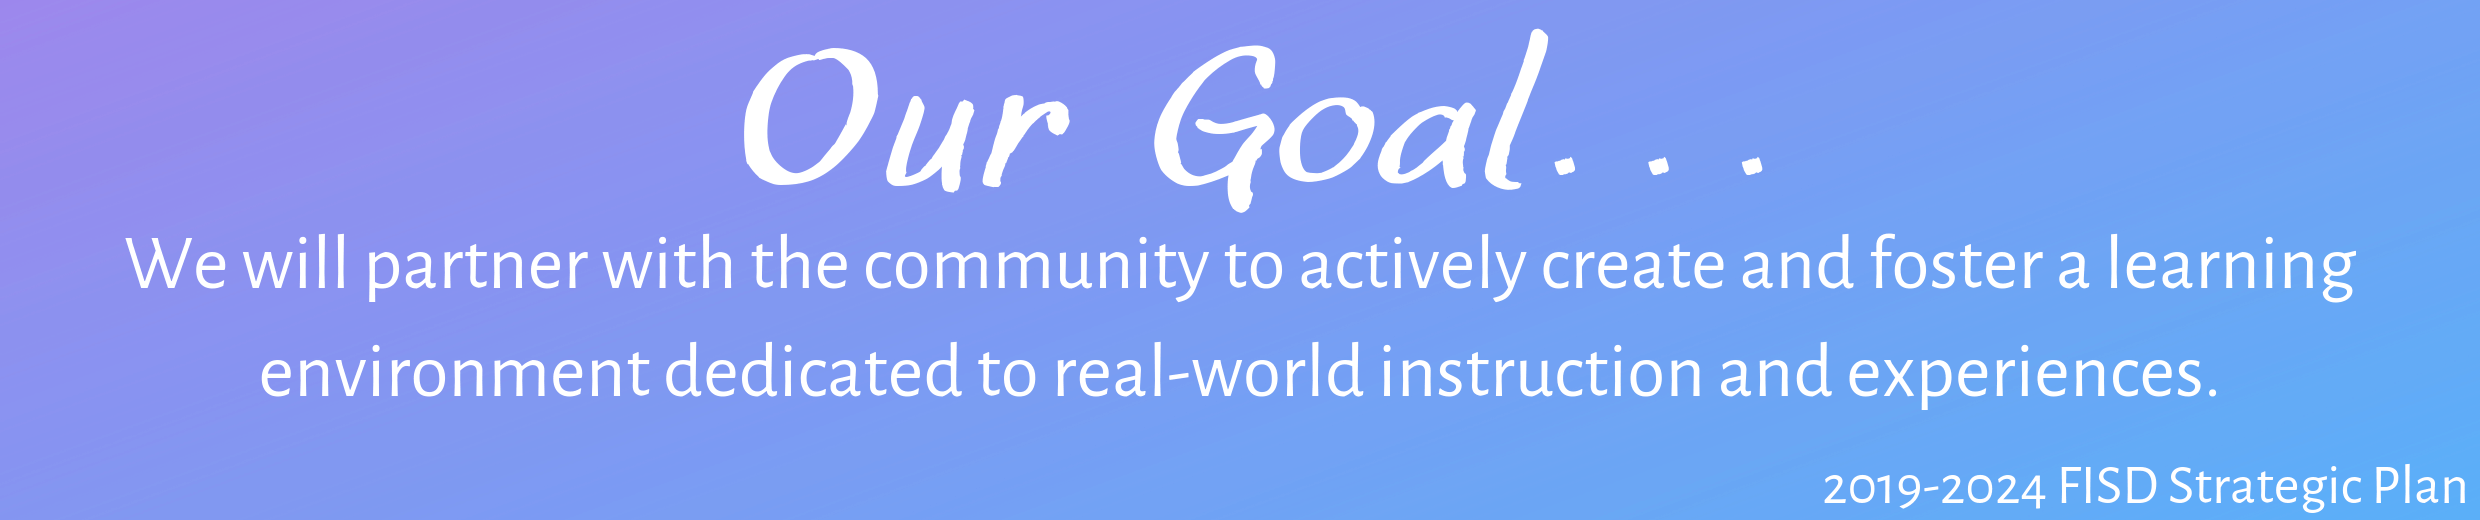 Out Goal.. We will partner with the community to actively create and foster a learning environment dedicated to real-world instruction and experiences.